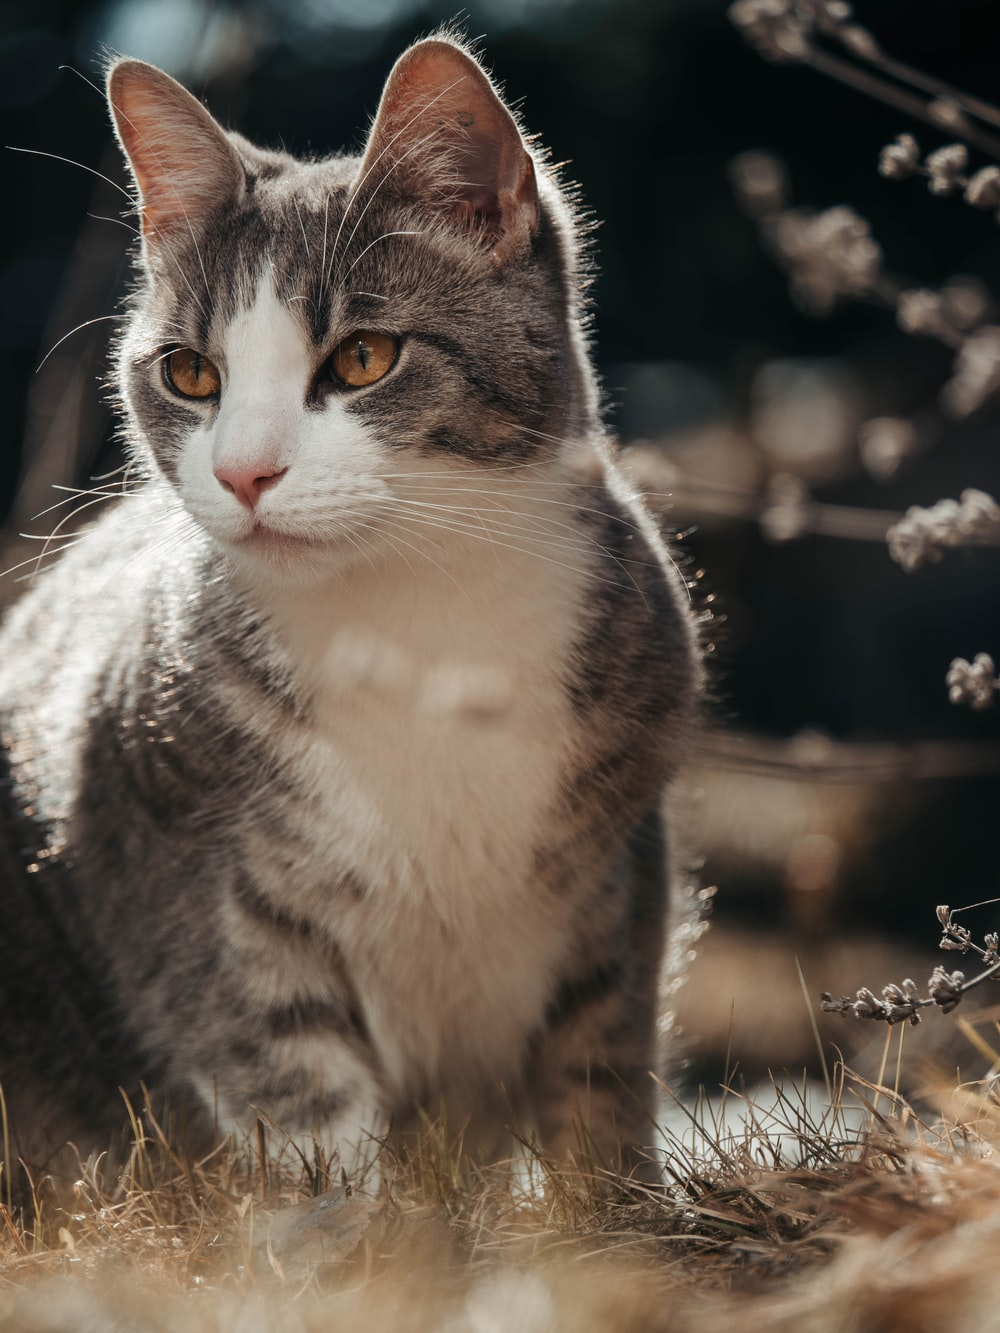 750+ Cute Cat Pictures | Download Free Images on Unsplash